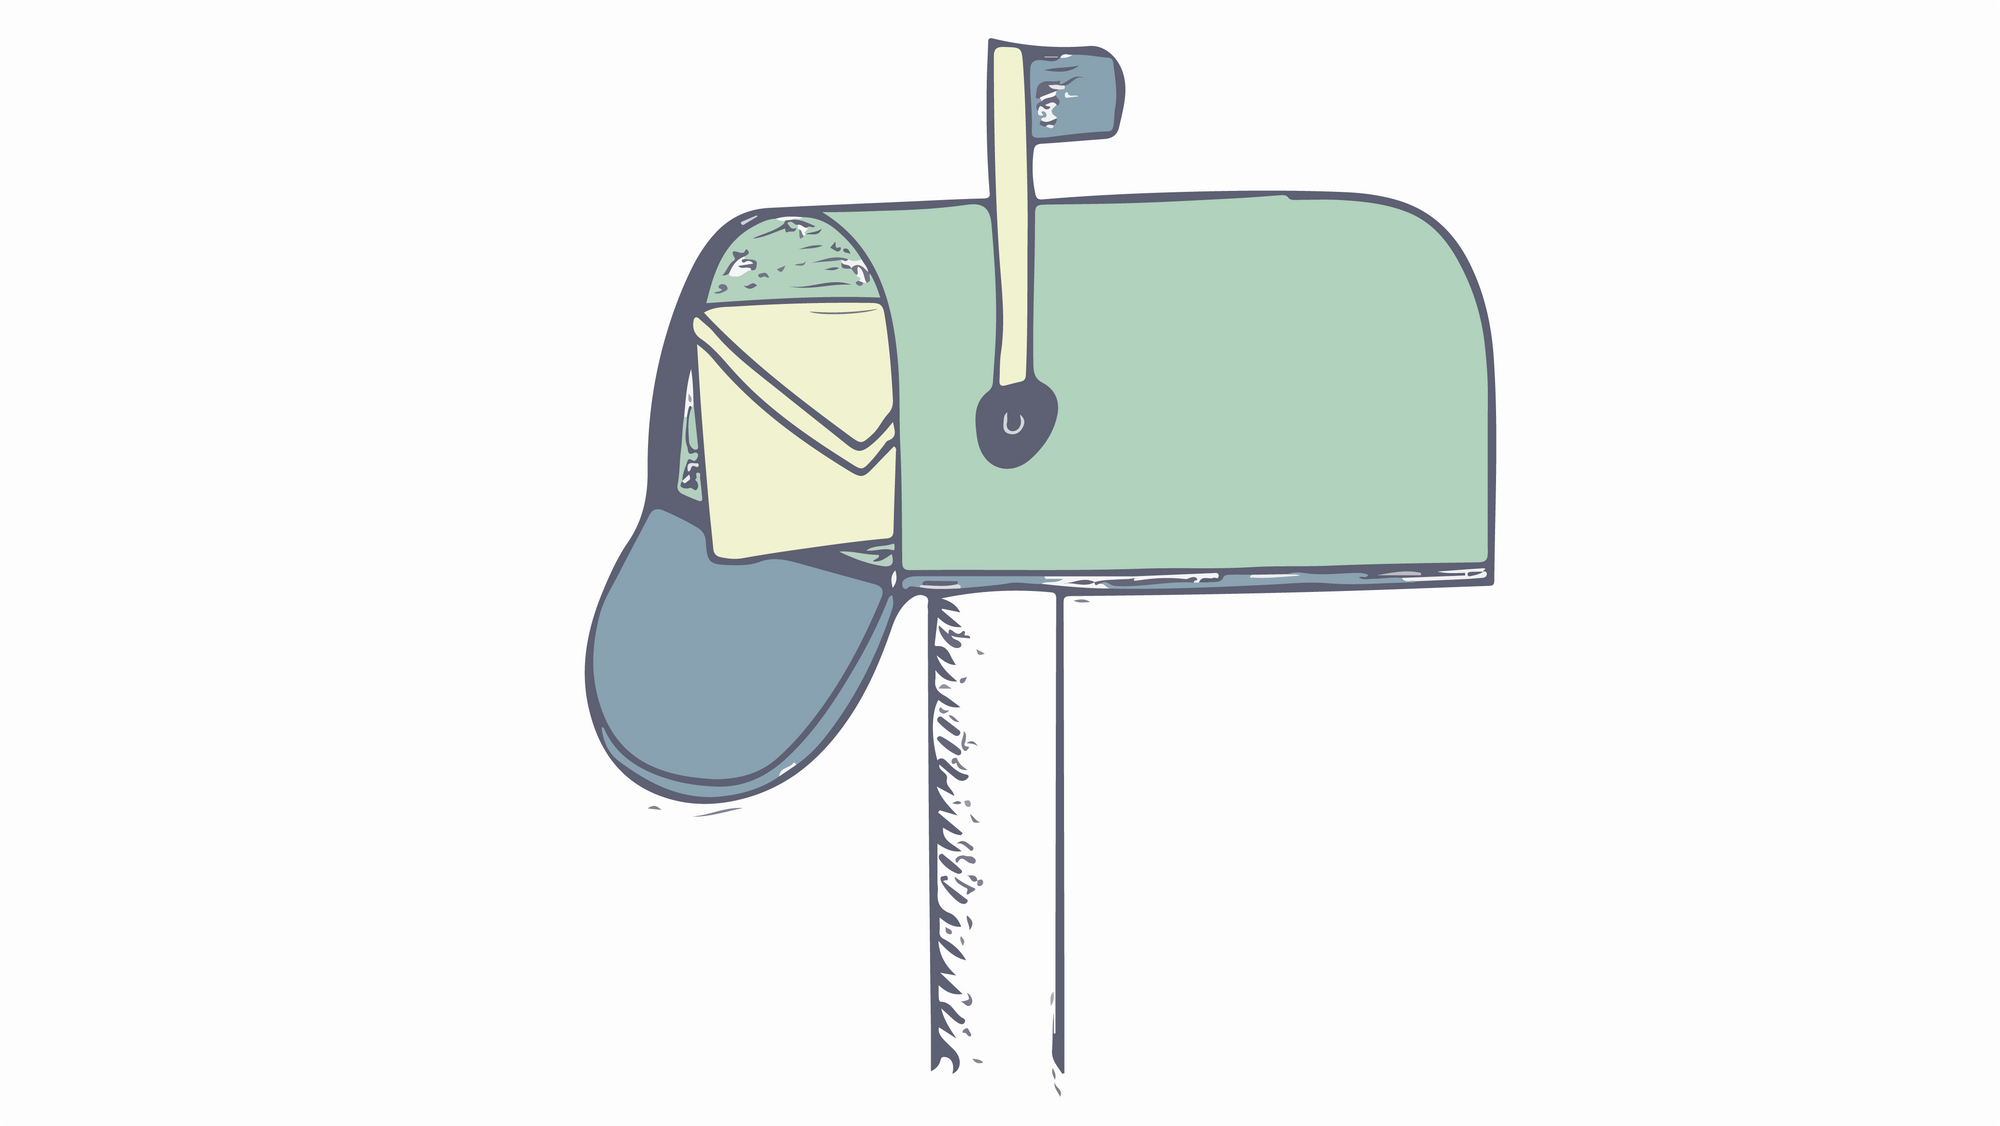 A drawing of a mailbox with a letter inside